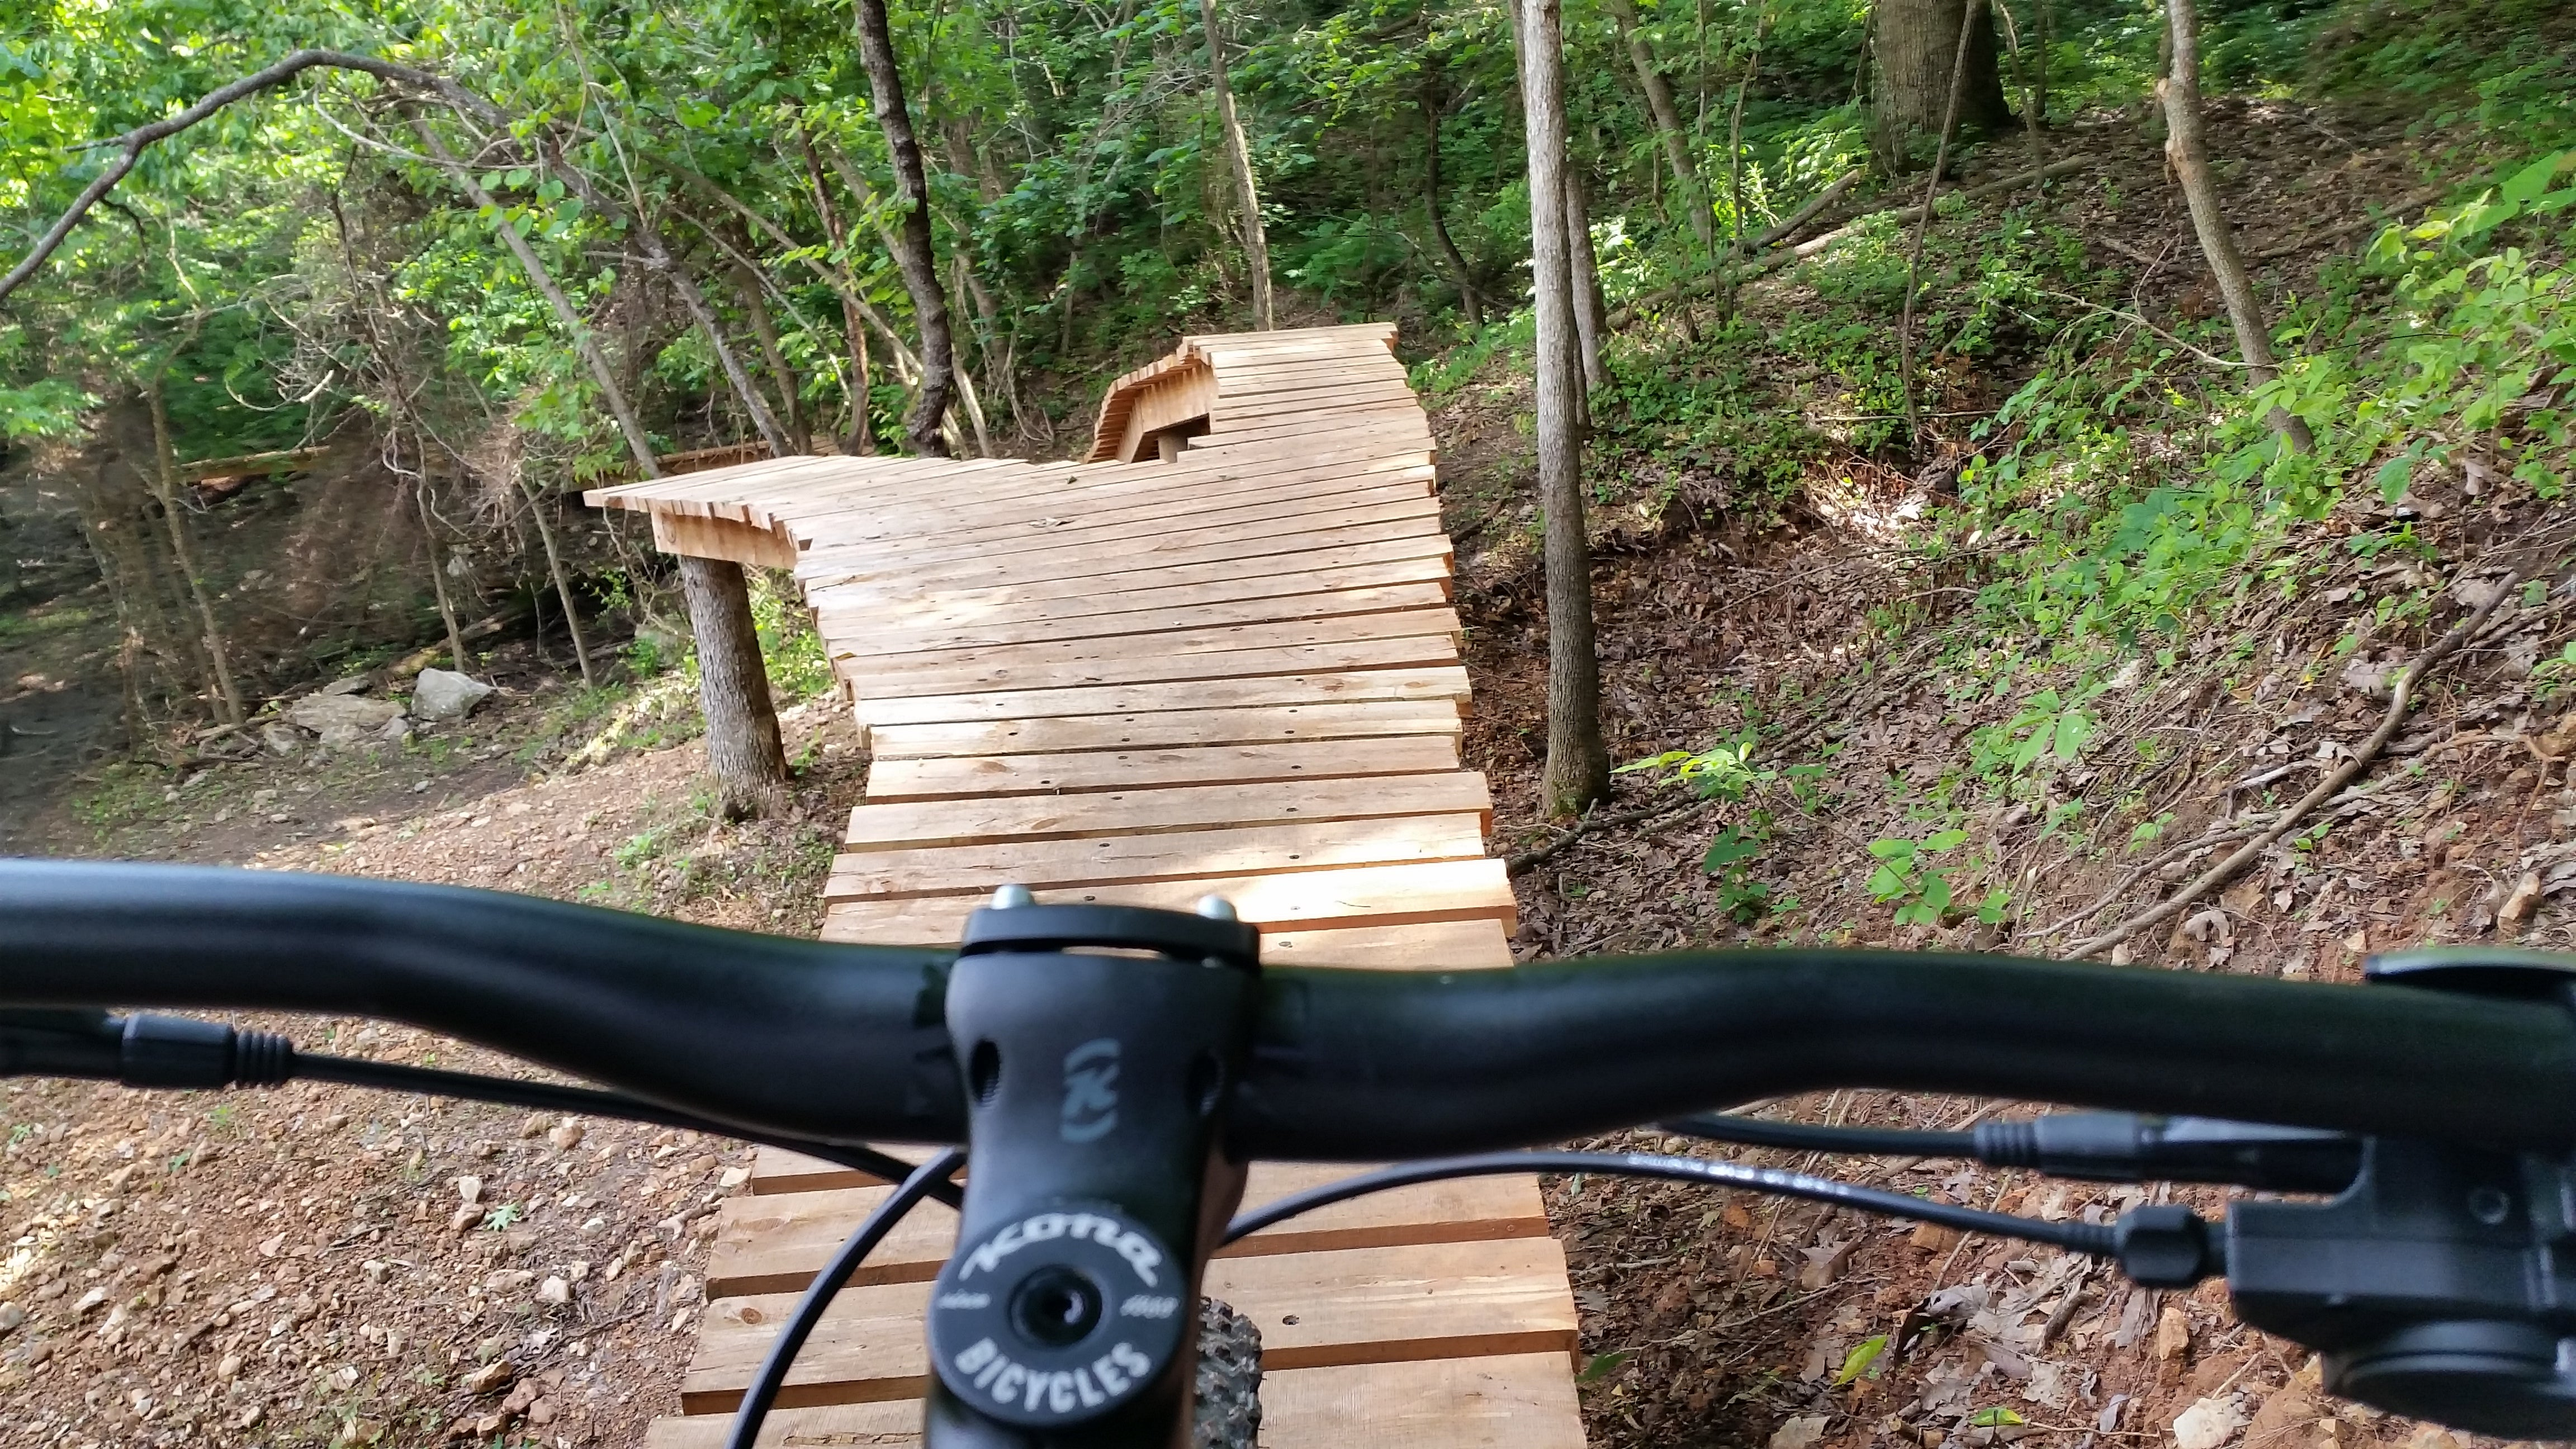 Learn to ride drops and wood features at Slaughter Pen trails